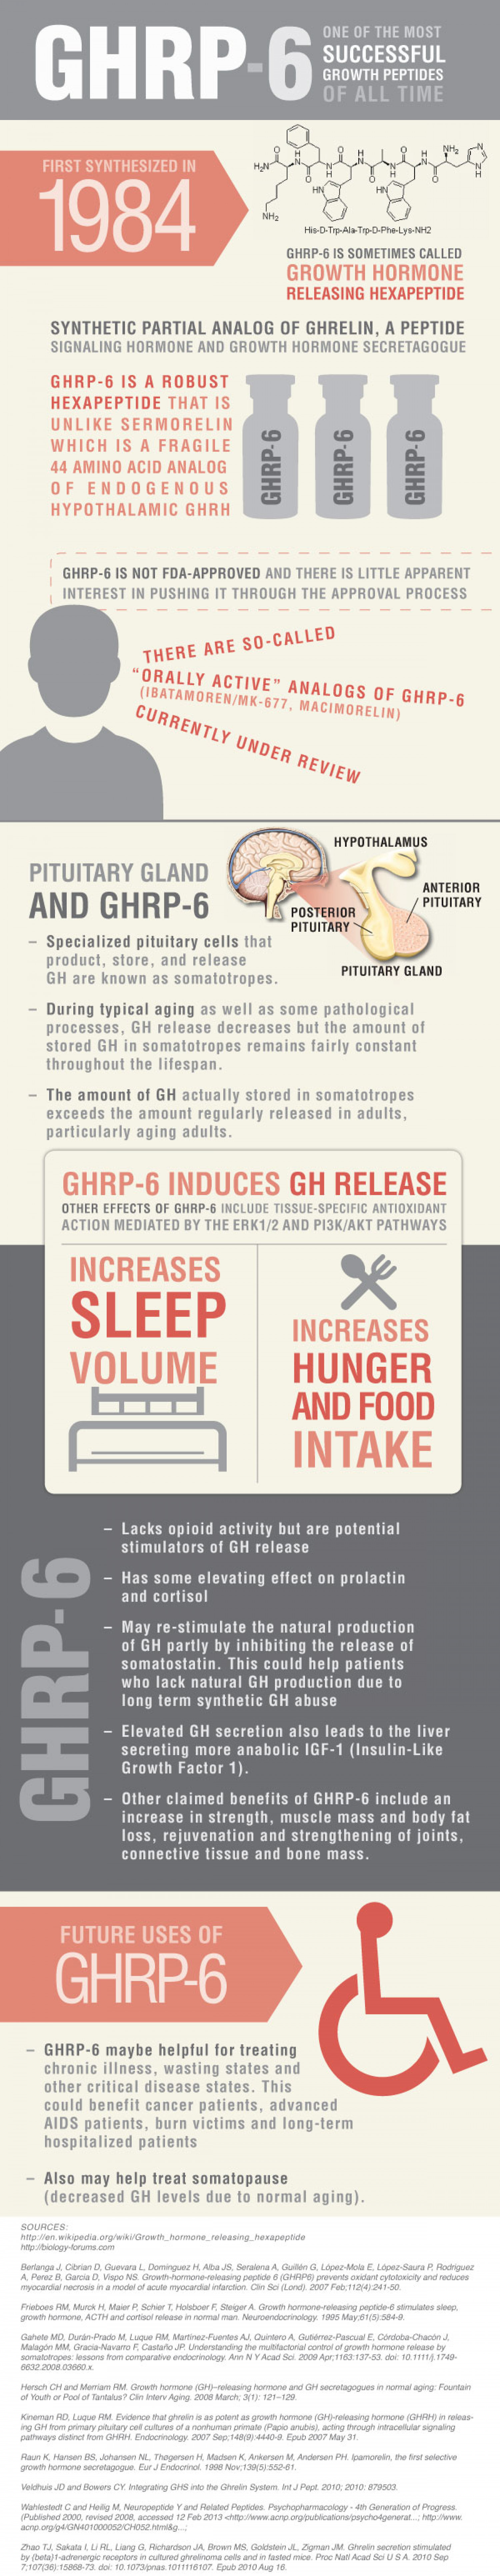 GHRP 6 - One of the Most Successful Growth Peptides of All Time Infographic Infographic